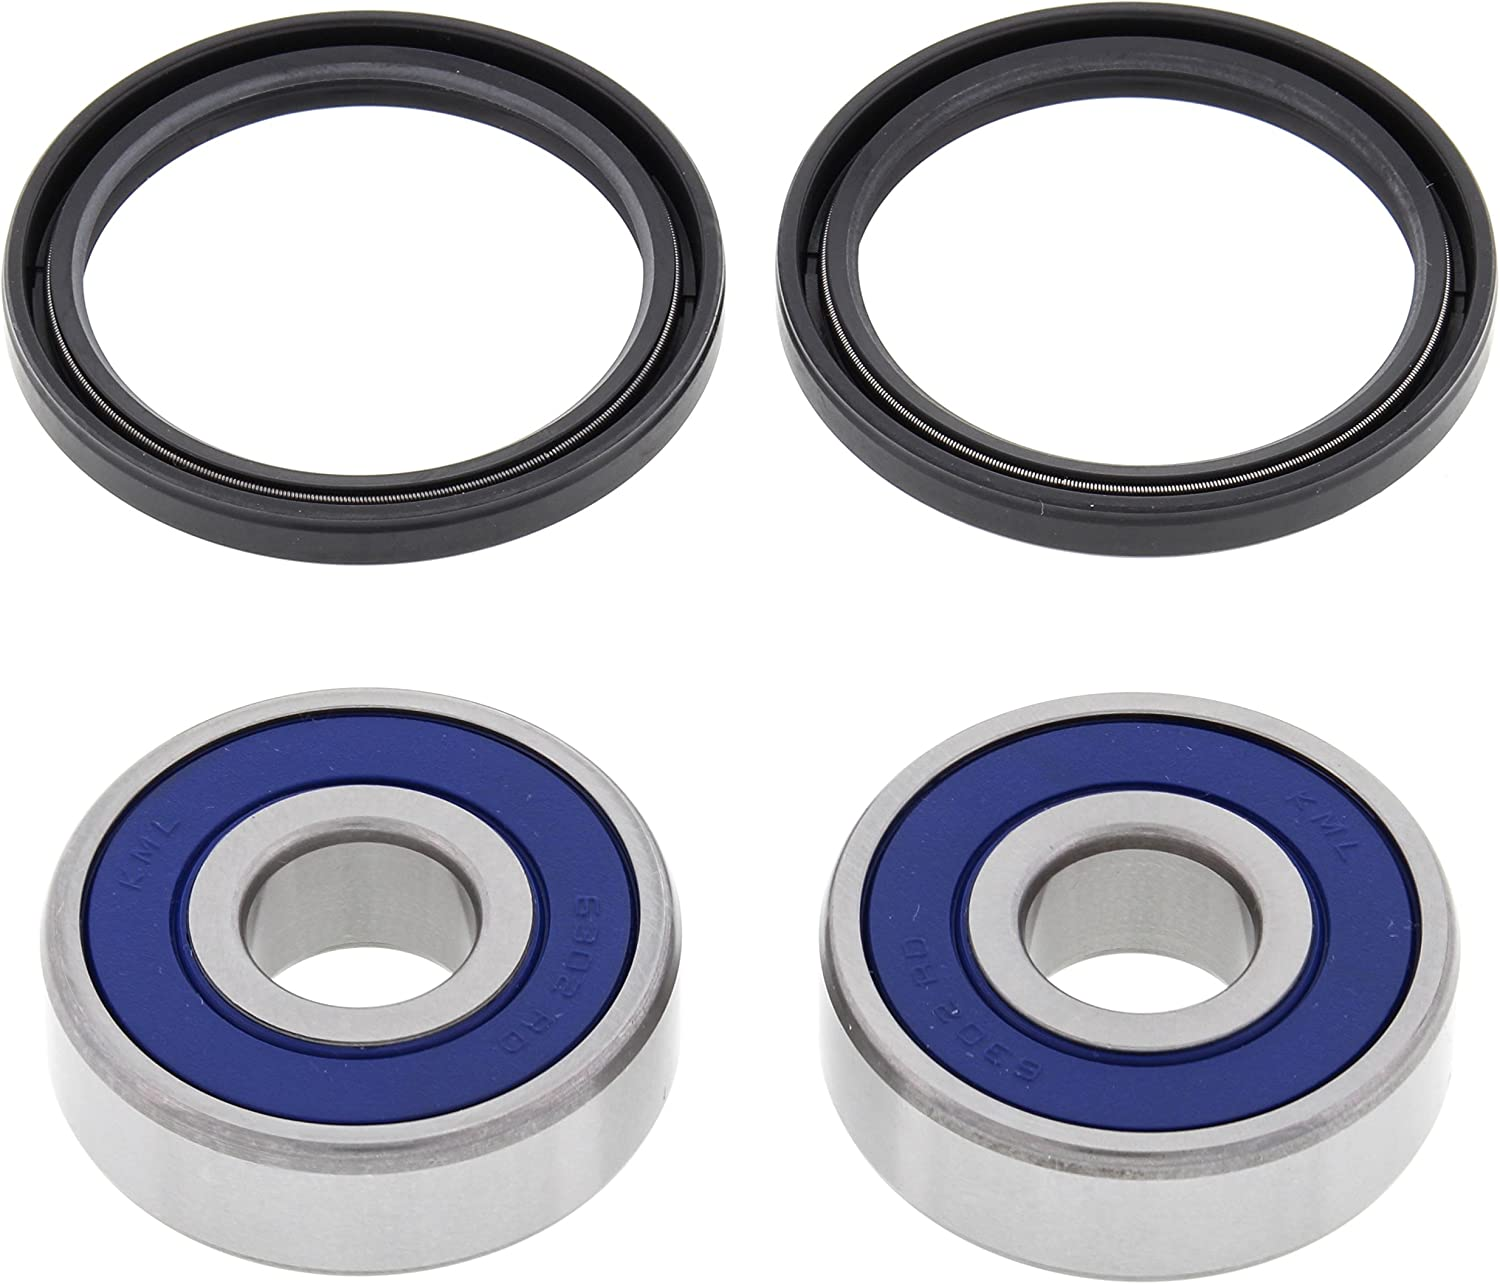 Suzuki GS 550 1977-1979 Showe Steering Bearing Kit